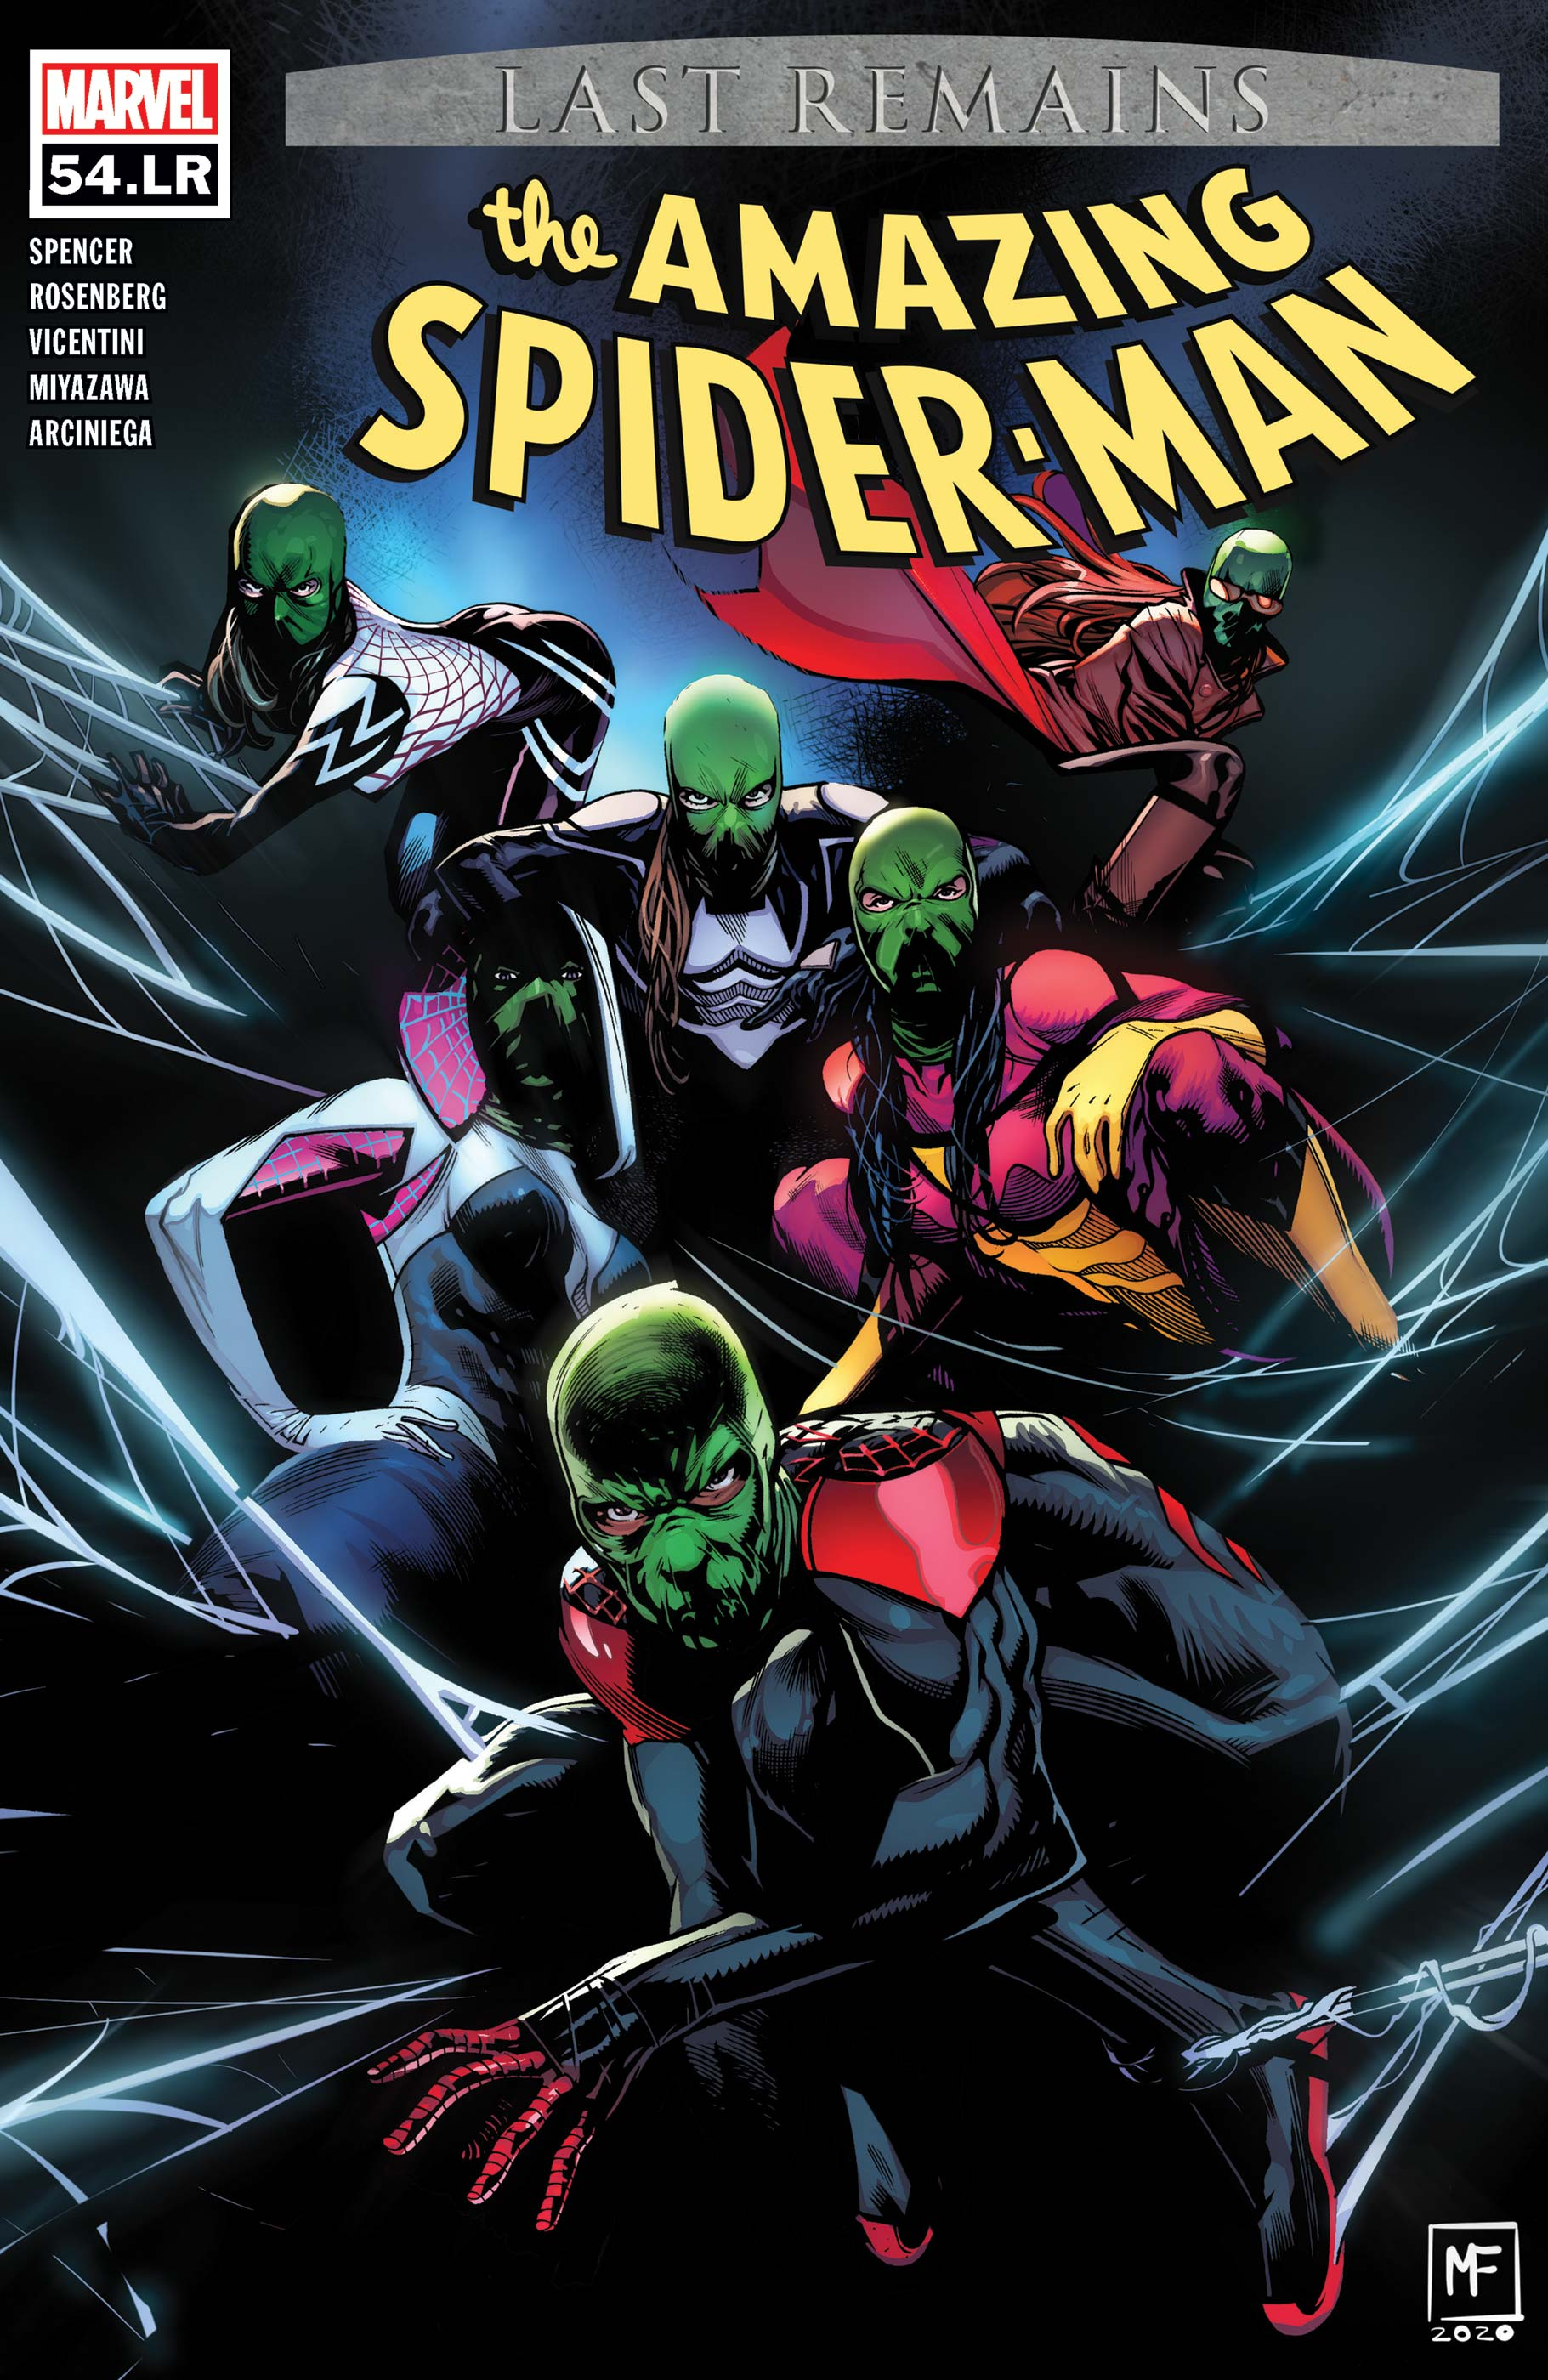 The Amazing Spider-Man (2018) #54.1